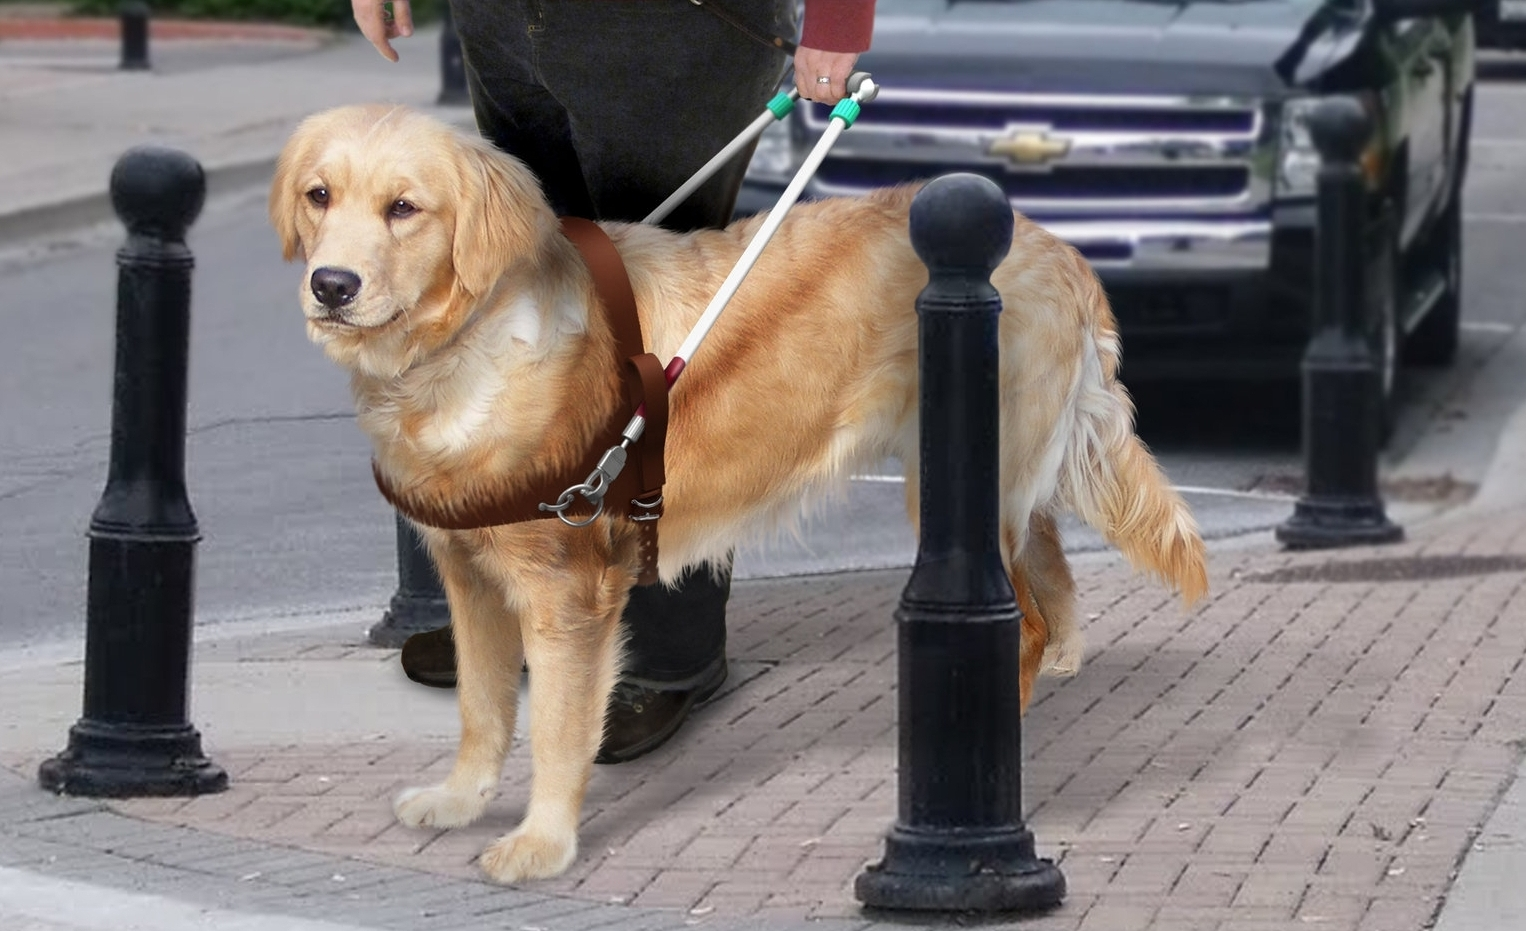 INDUSTRIAL DESIGN - Guide dog harness re-designDolly re-designPlayground equipment for education